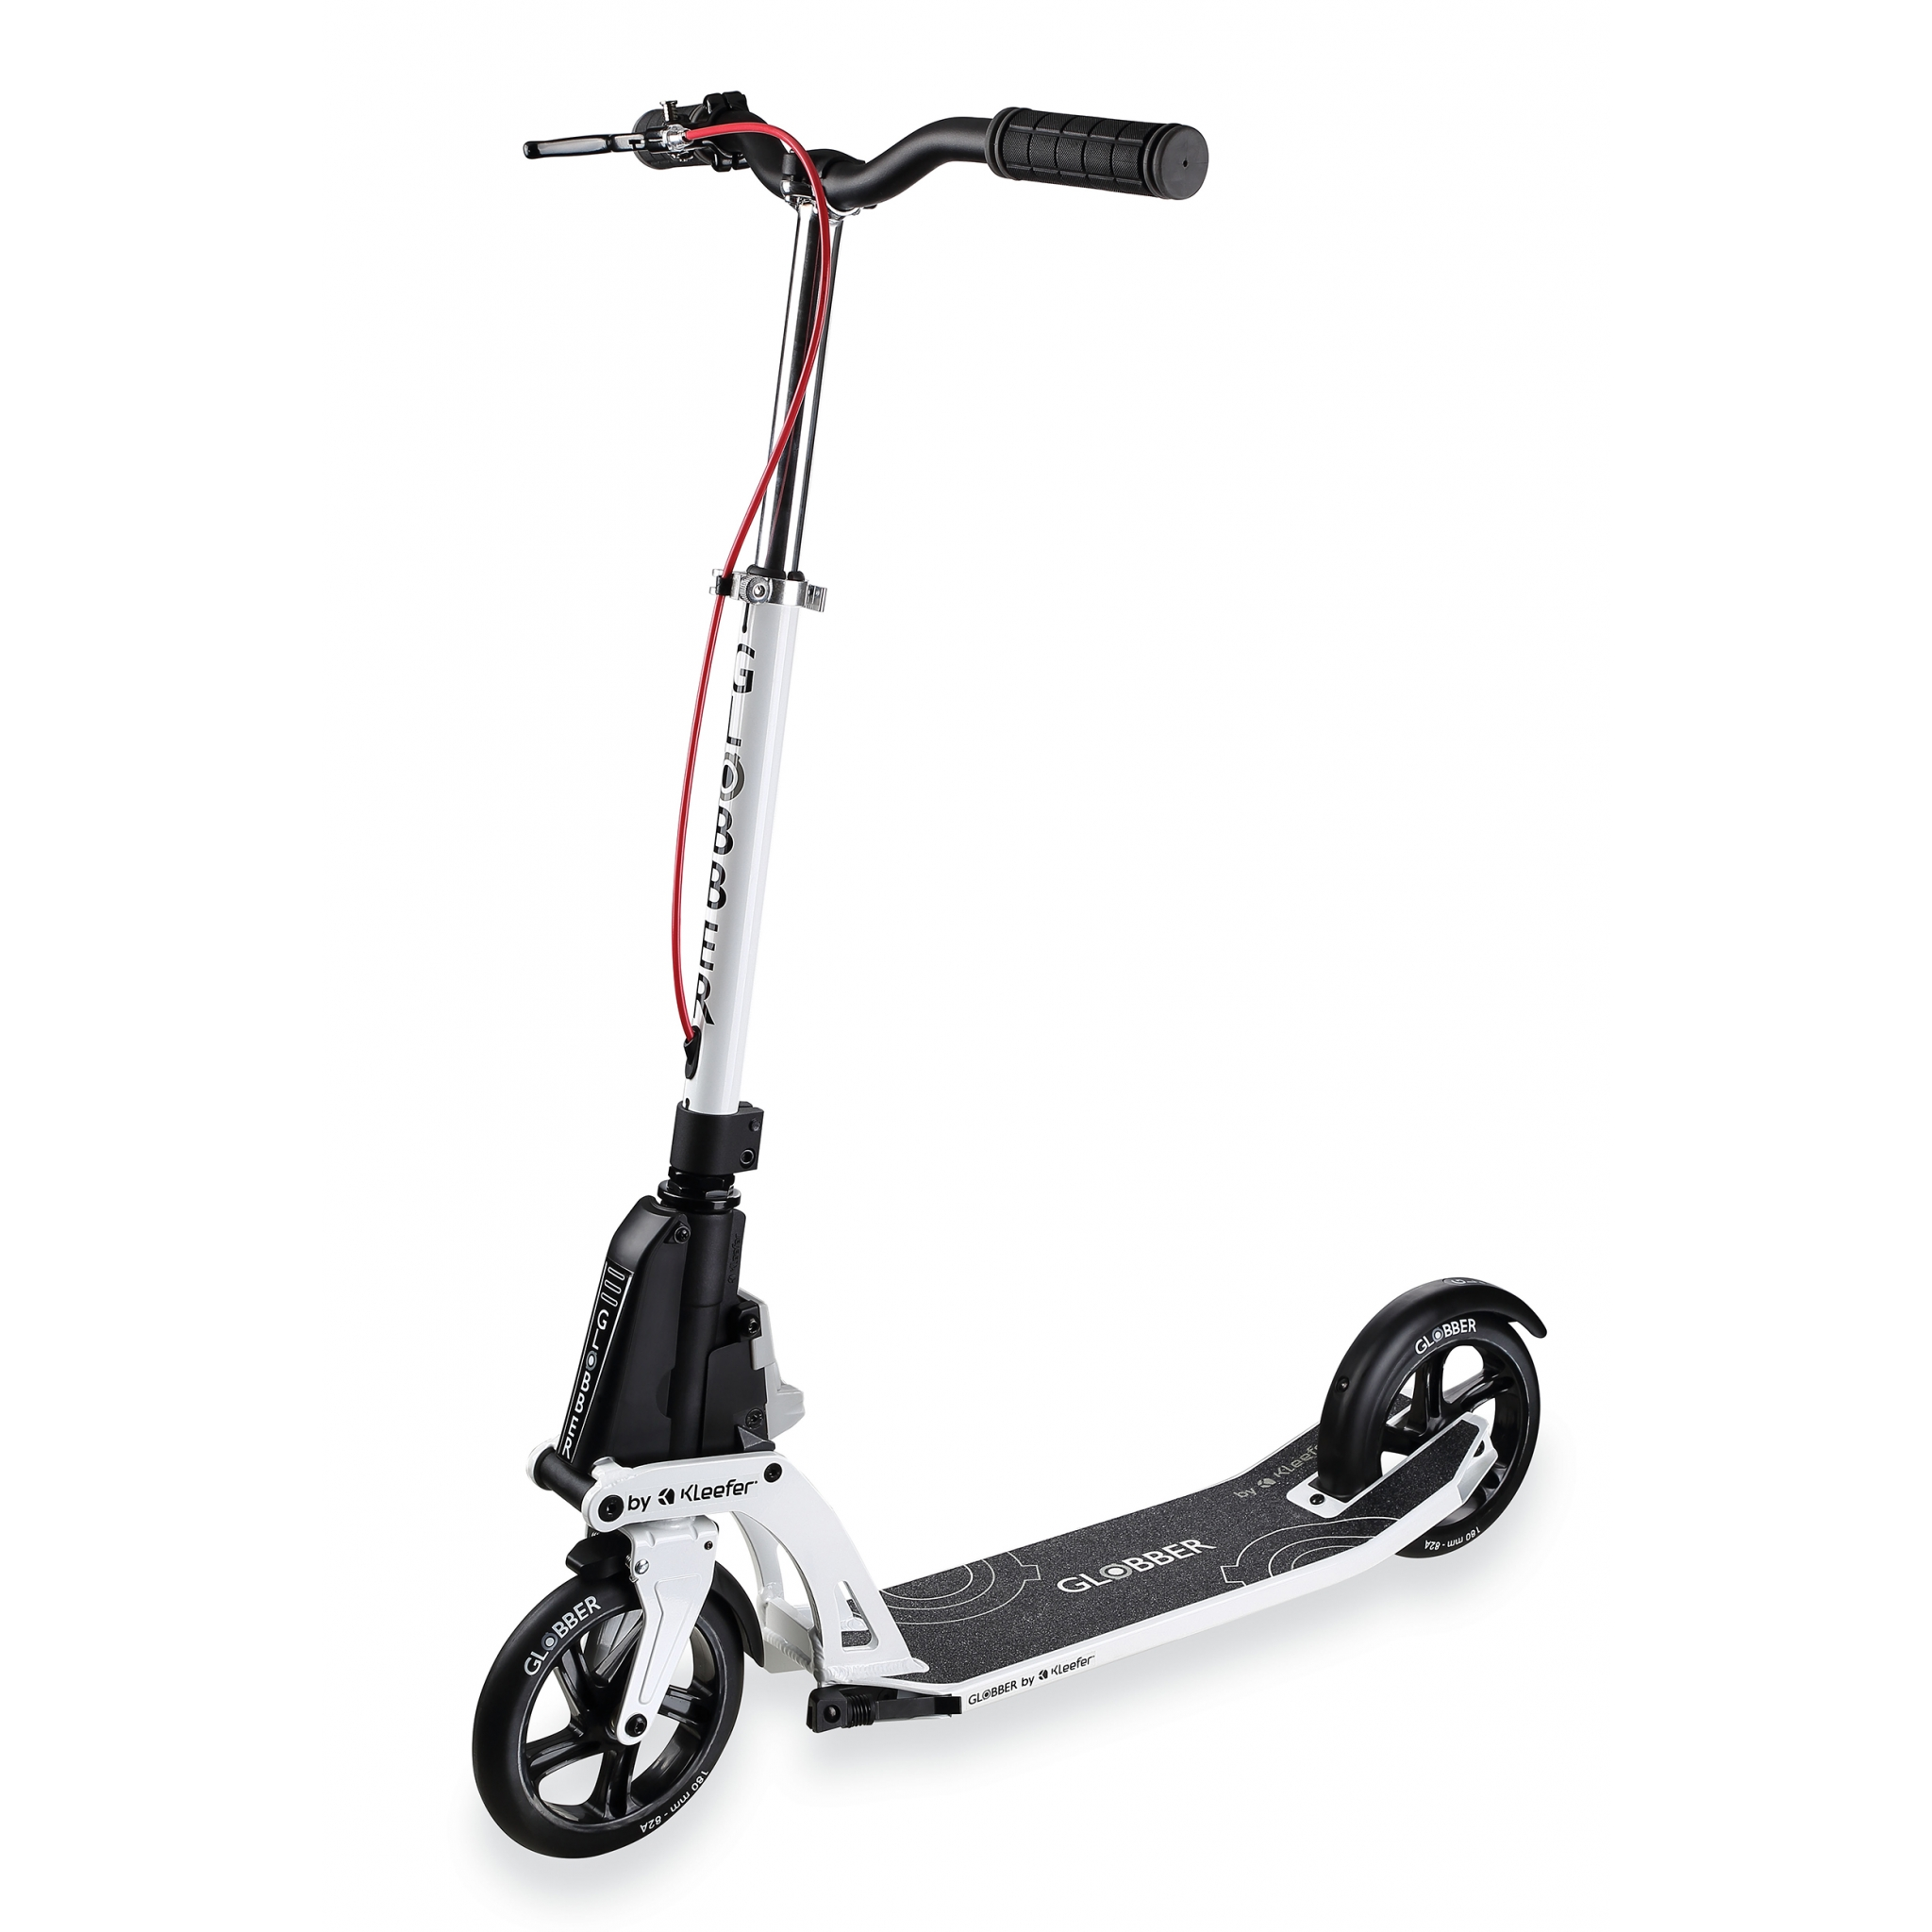 foldable scooter for adults with handbrake - Globber ONE K ACTIVE BR 0